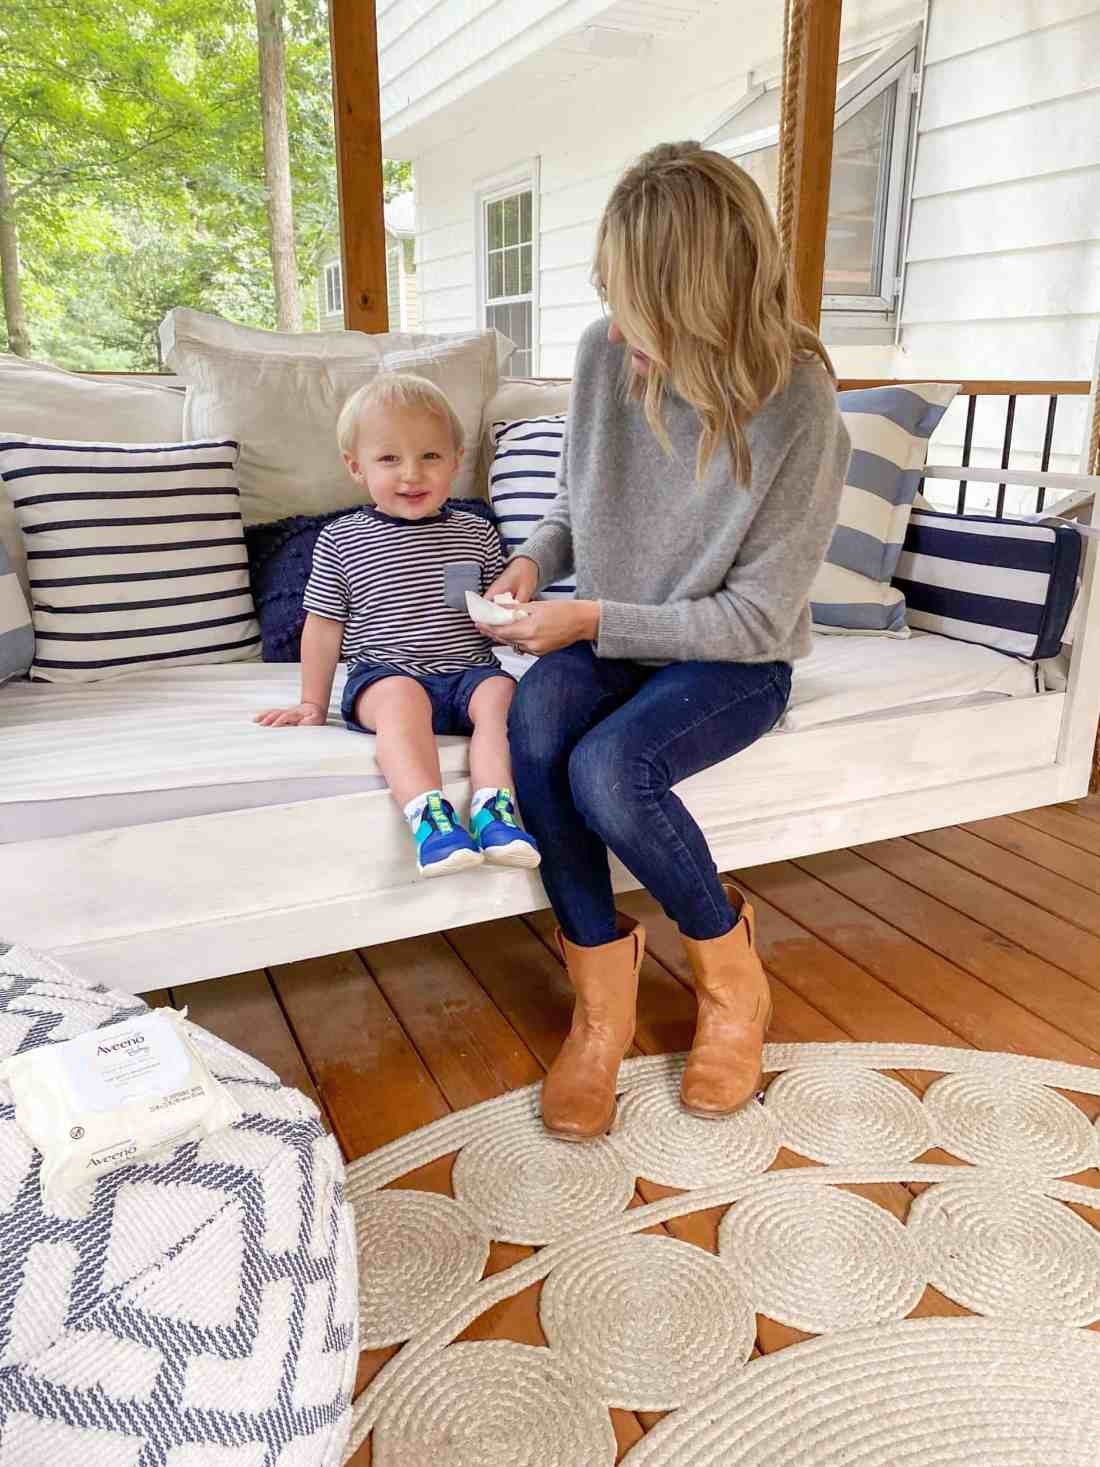 Bath and Bedtime Routine with Aveeno® Baby featured by top Michigan lifestyle blogger, The House of Navy: mom and son cleaning hands | Aveeno Baby by popular Michigan motherhood blog, House of Navy: image of a mom and her young son sitting outside on a porch swing as the mom wipes her sons hands off with Aveeno Baby wipes.